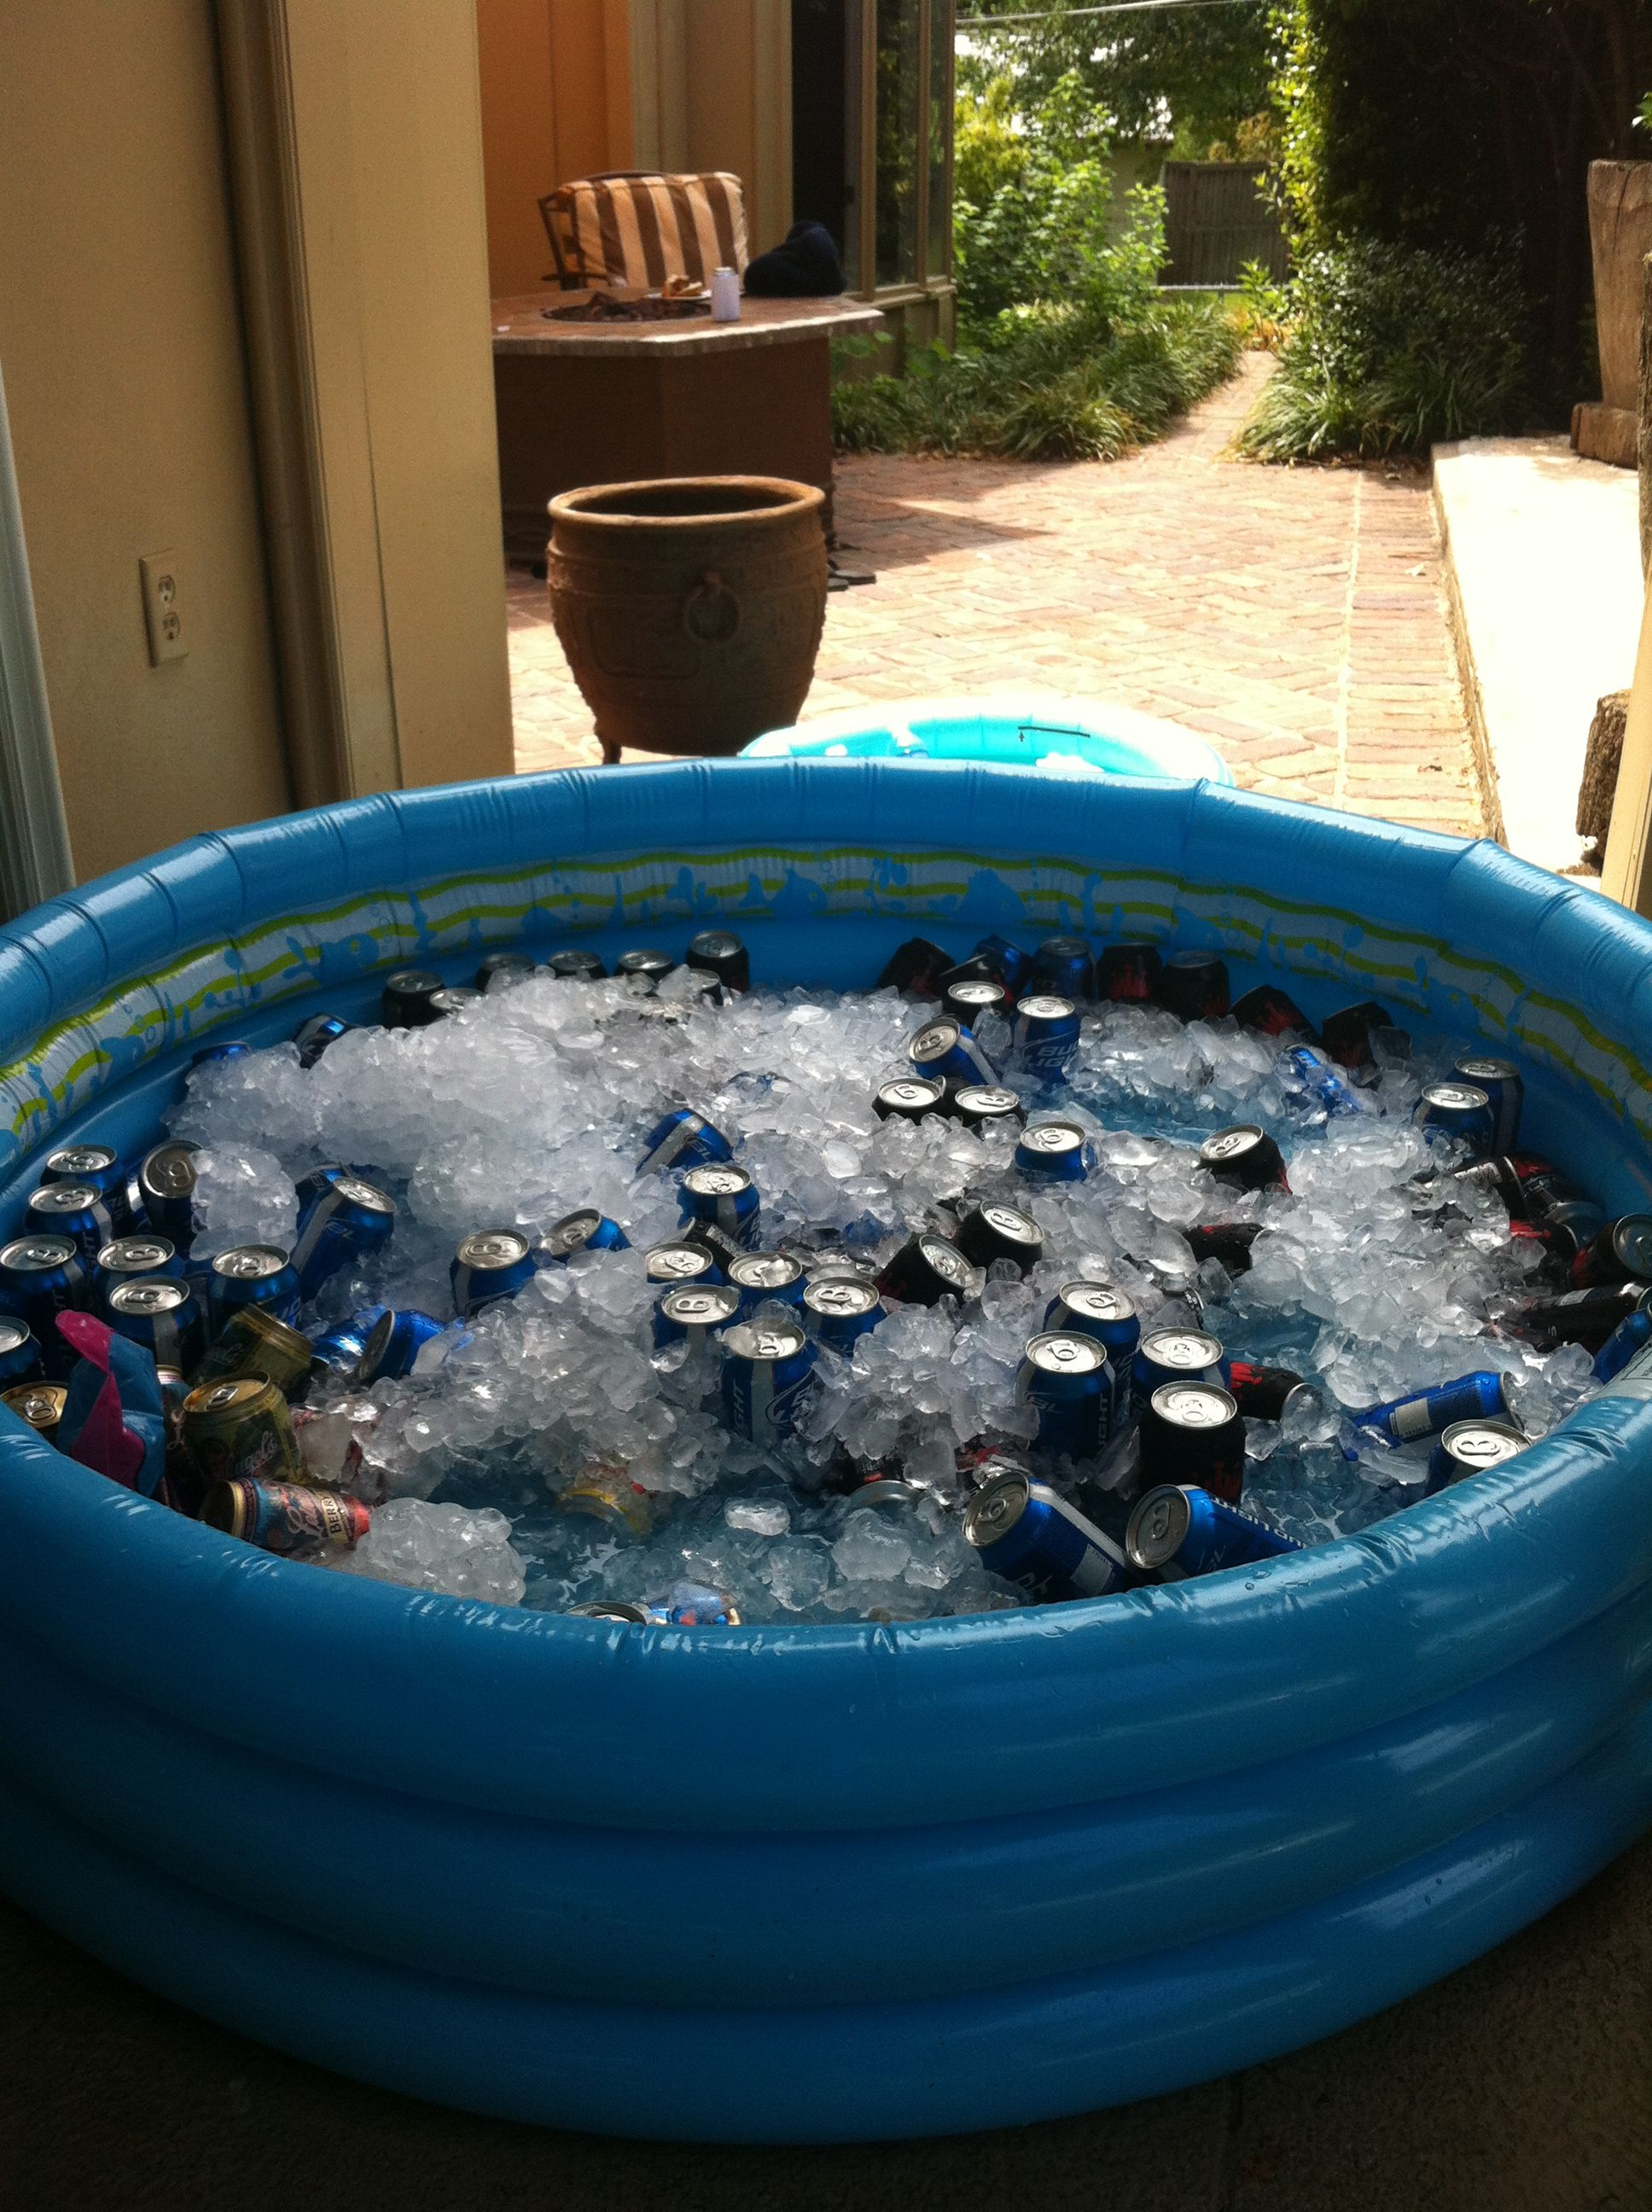 Pool Party Cooler Visit Poolcoolers Com For More Info On